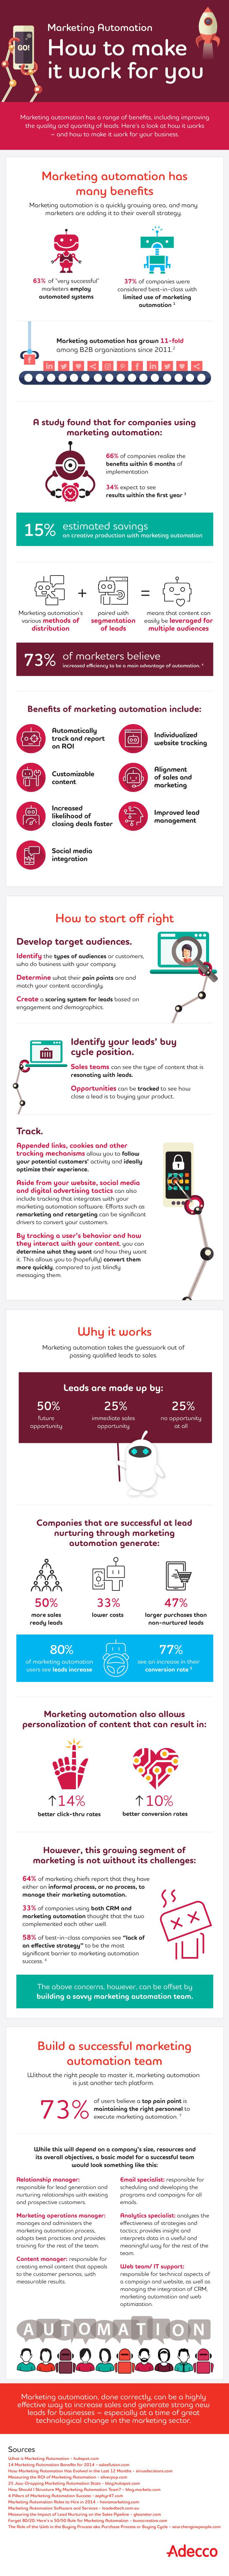 Infographic on how to make marketing automation tools and talent work for you.